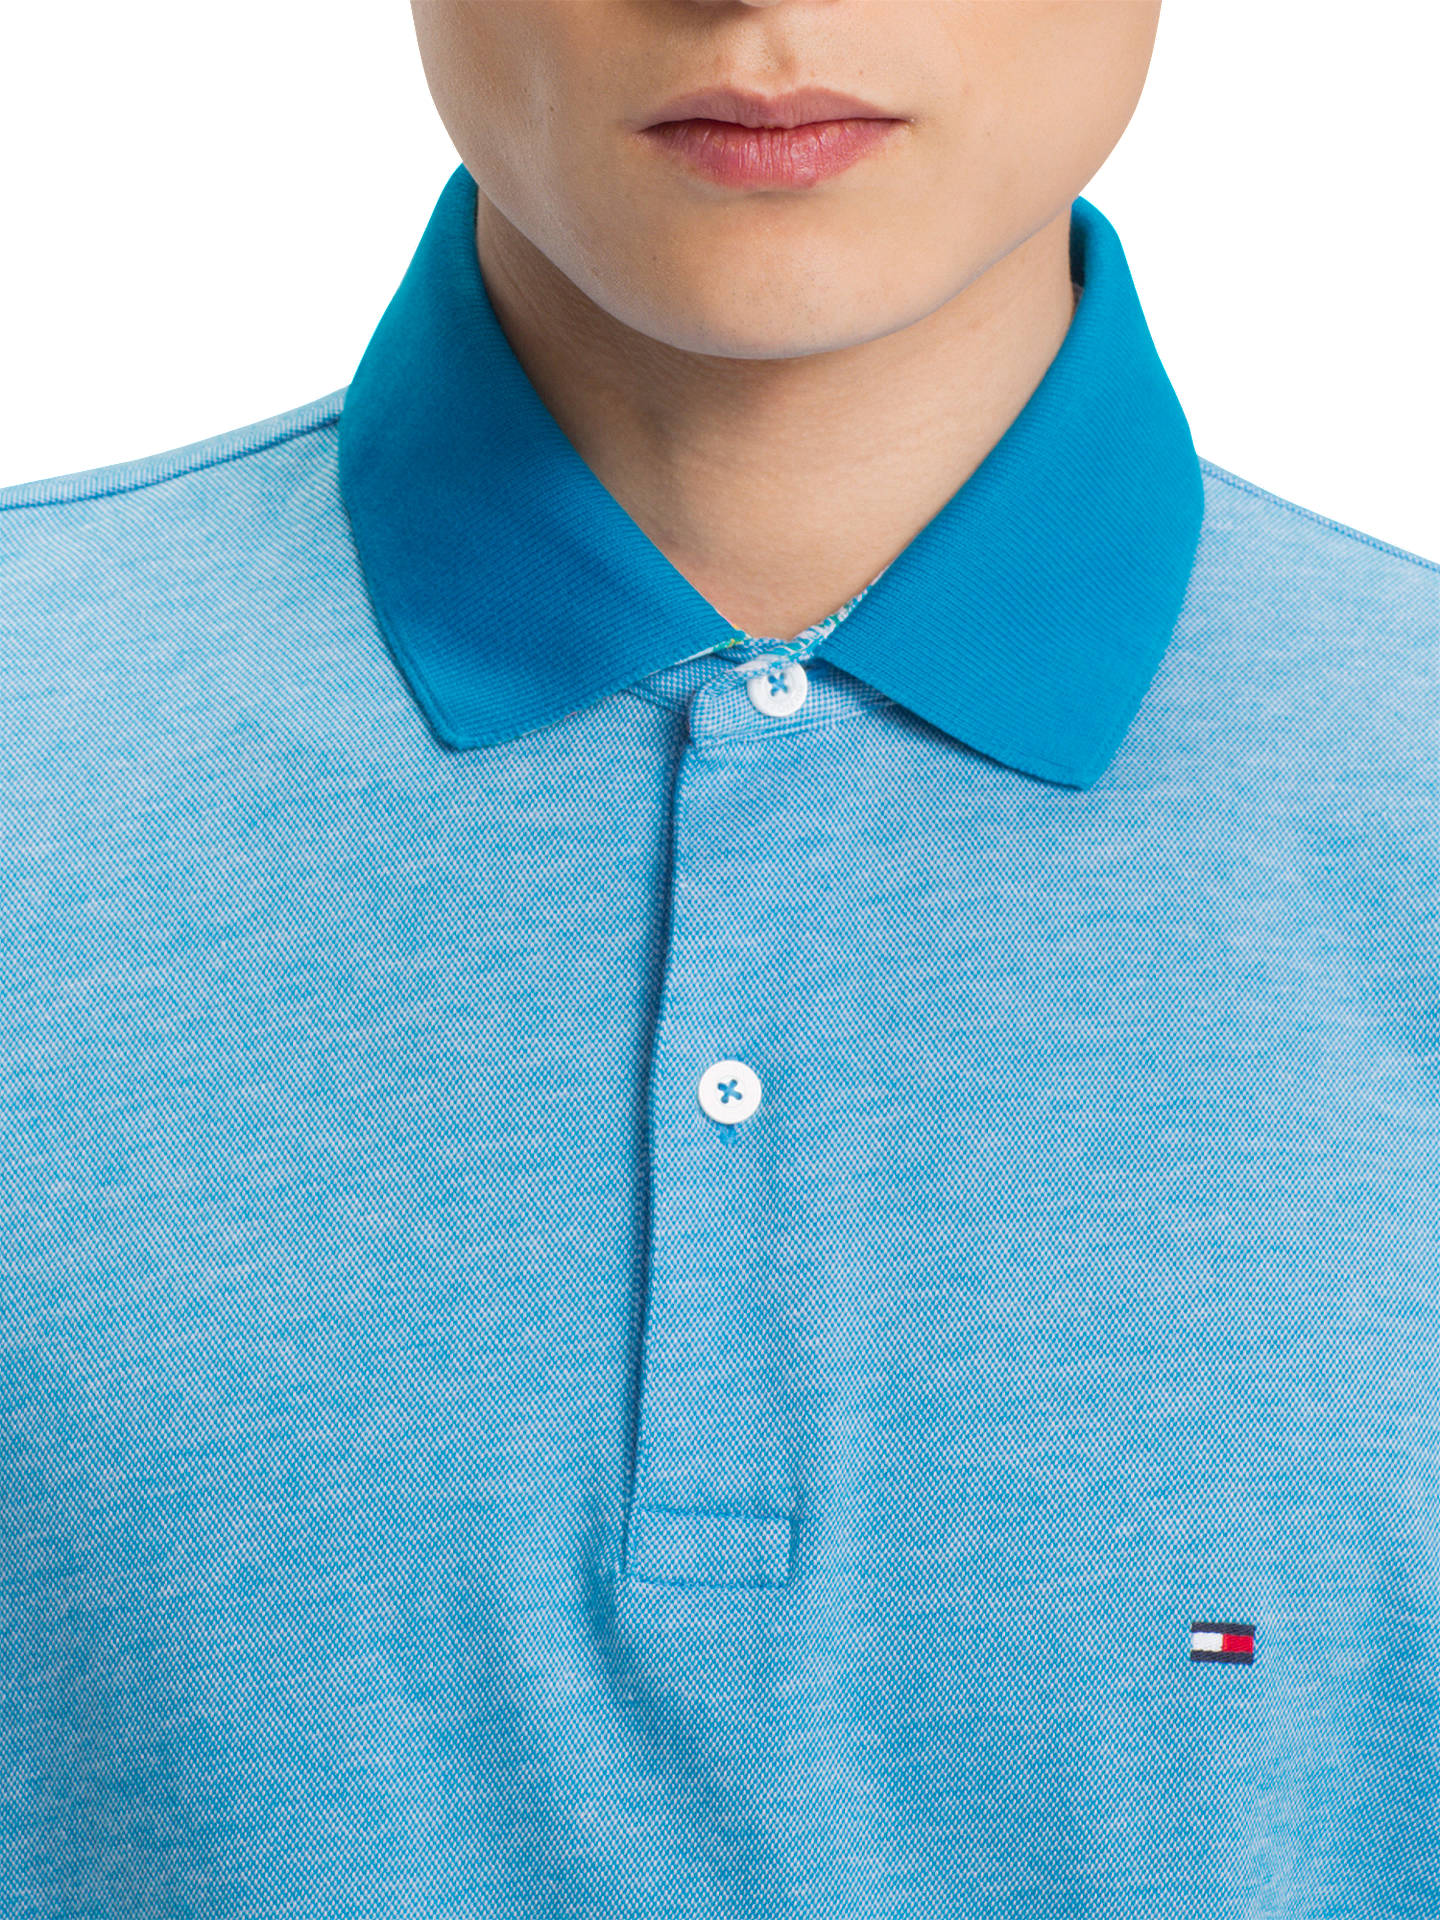 423f8d43 ... Buy Tommy Hilfiger Printed Undercollar Polo Shirt, Blue, L Online at  johnlewis.com ...